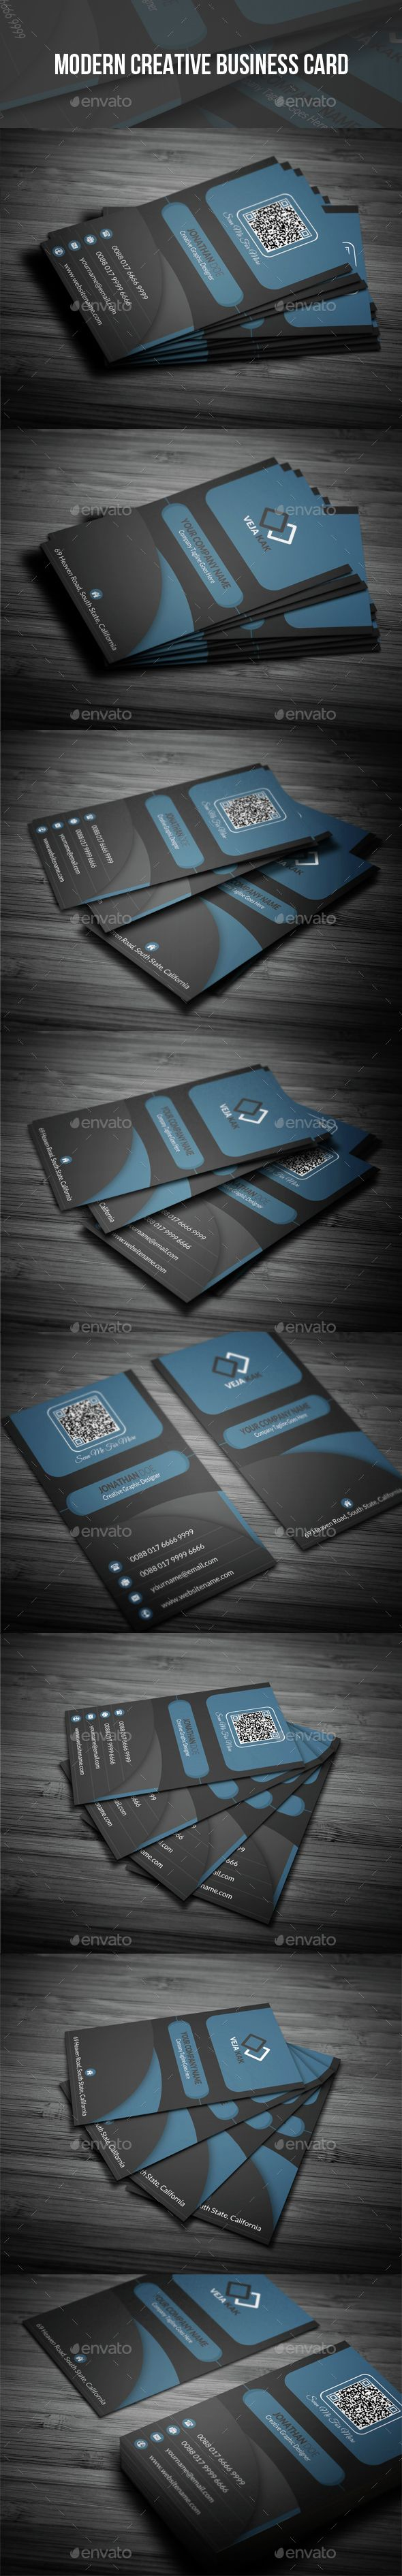 77 Best Business Card Designs Images On Pinterest Business Card